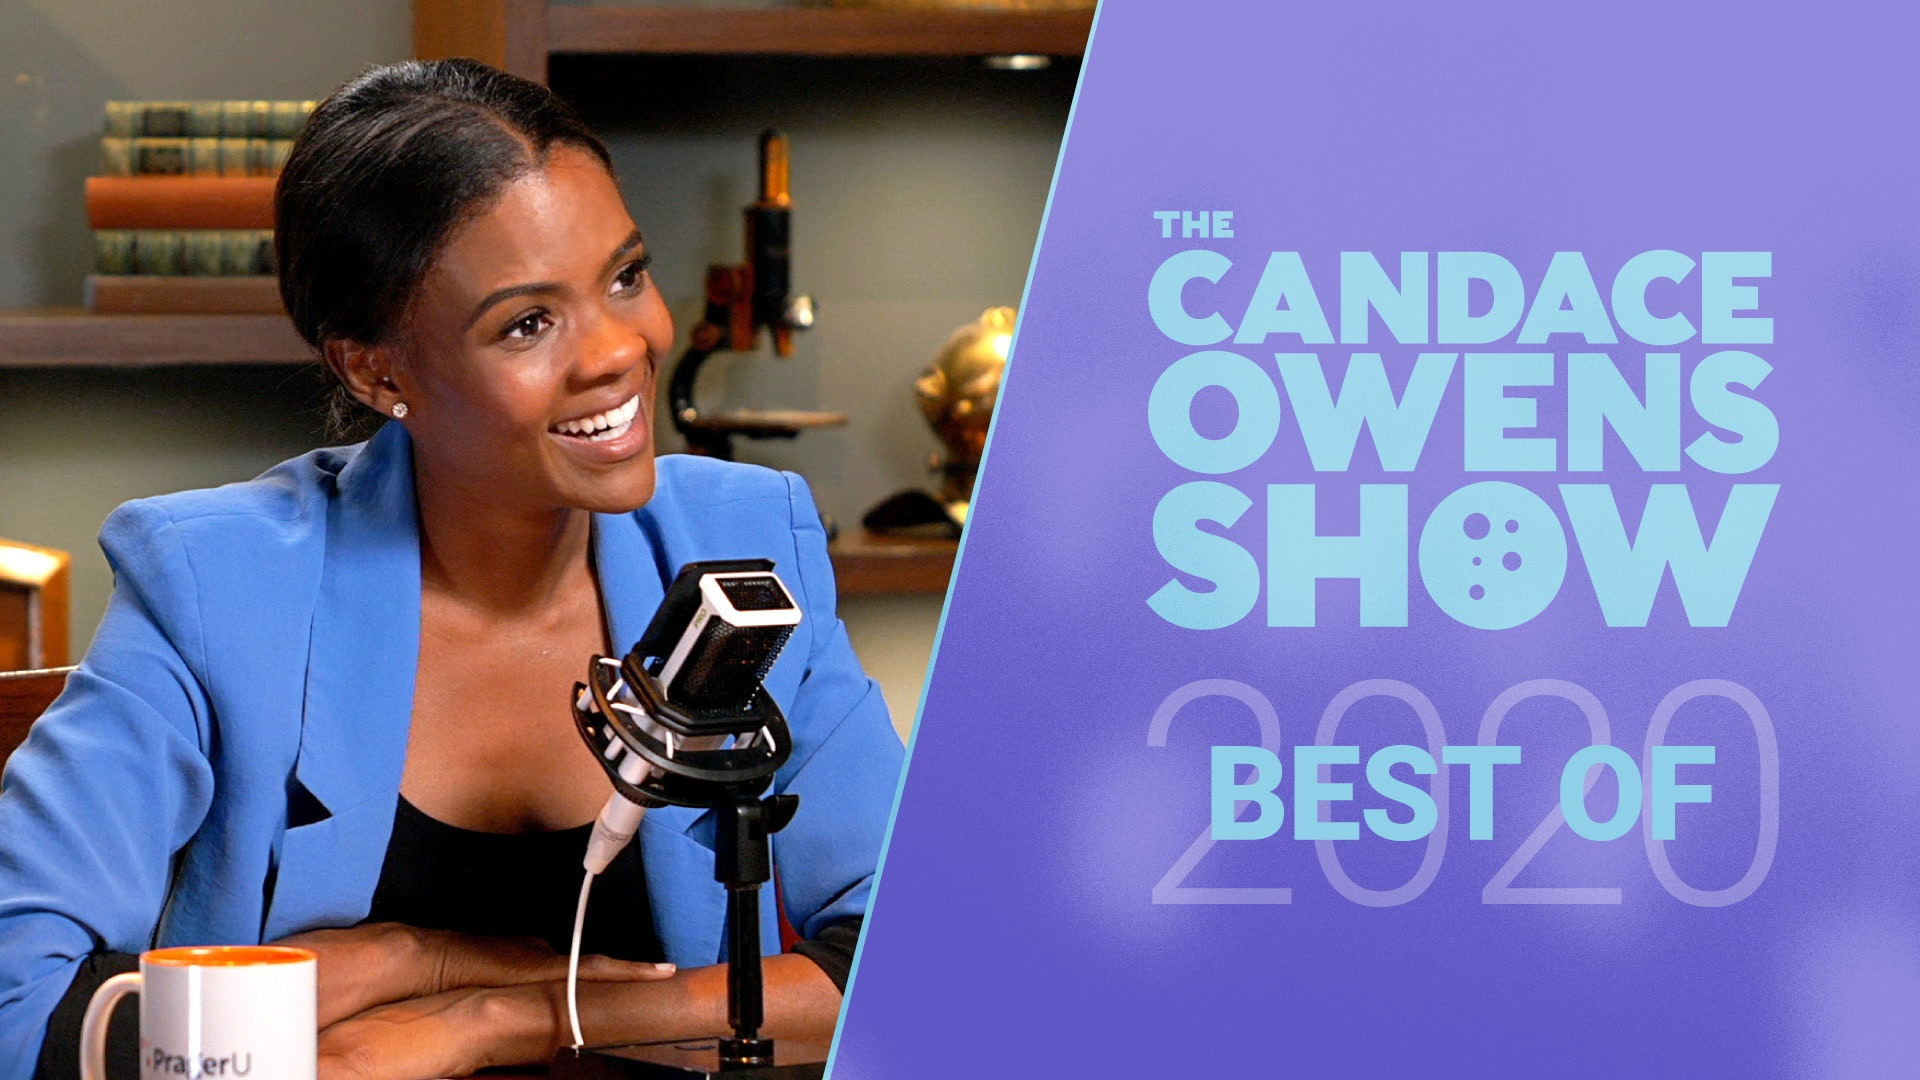 Best of The Candace Owens Show 2020